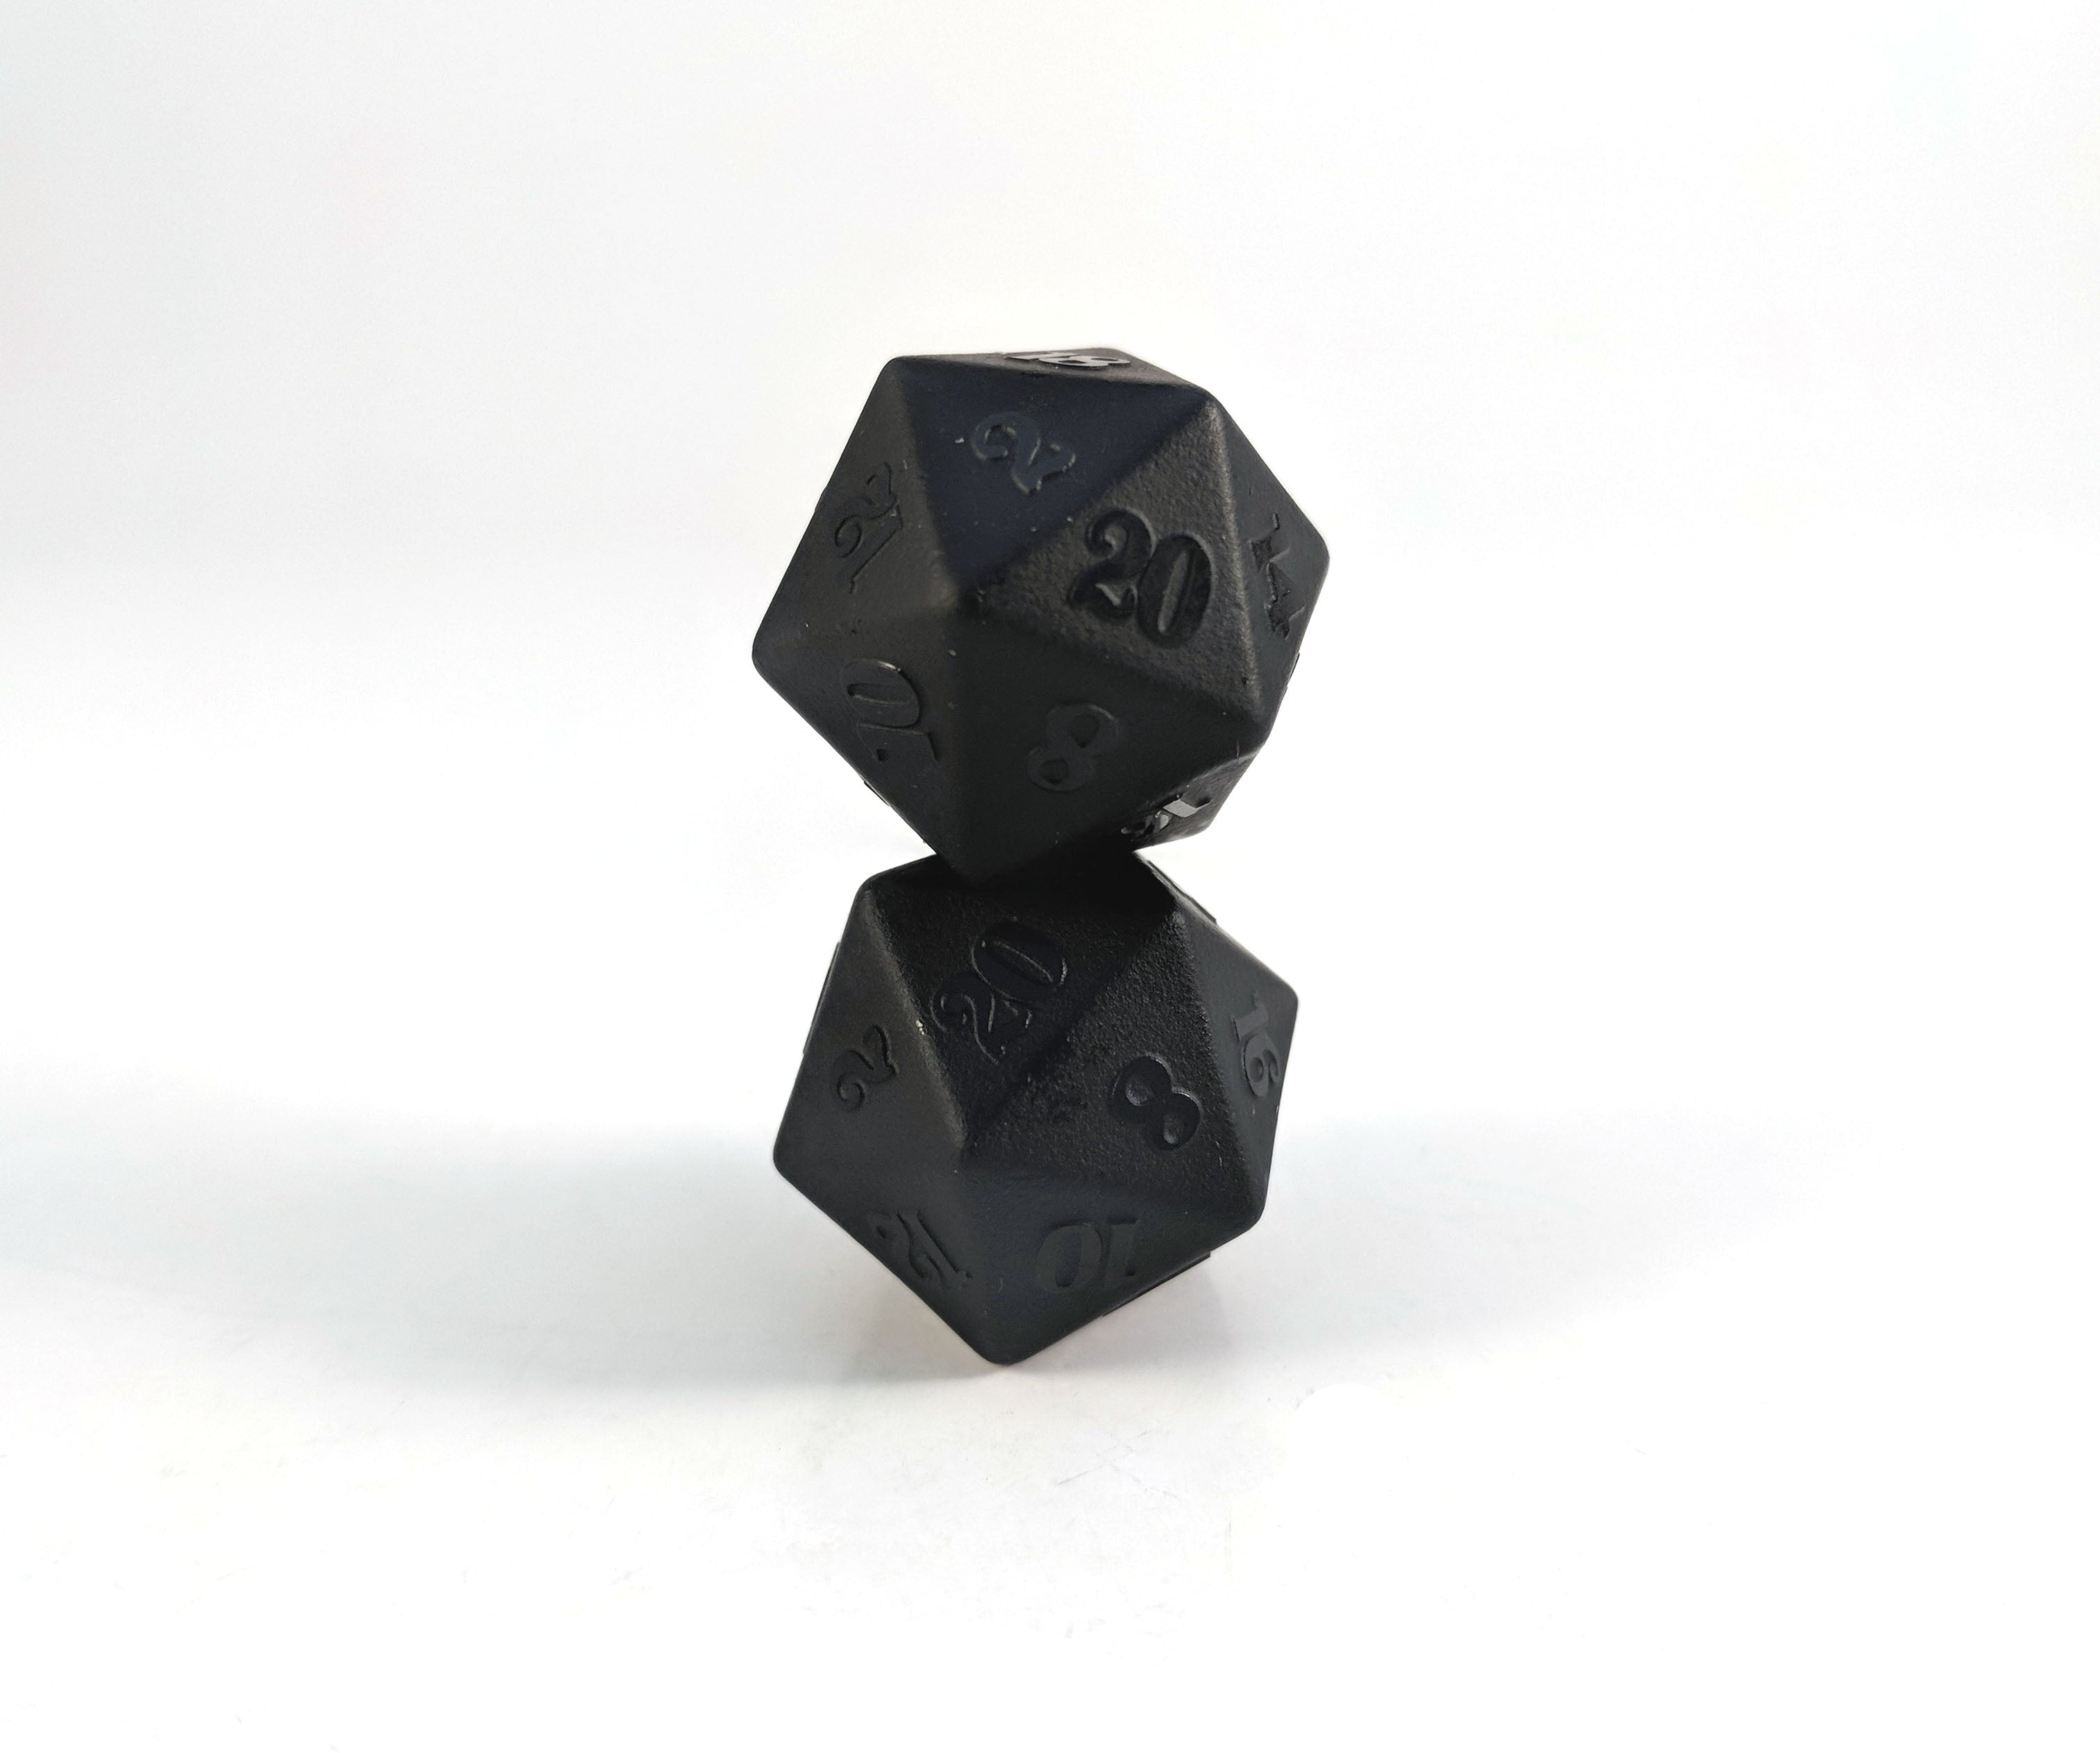 Raised Obsidian Semi Precious Stone D20 Dice